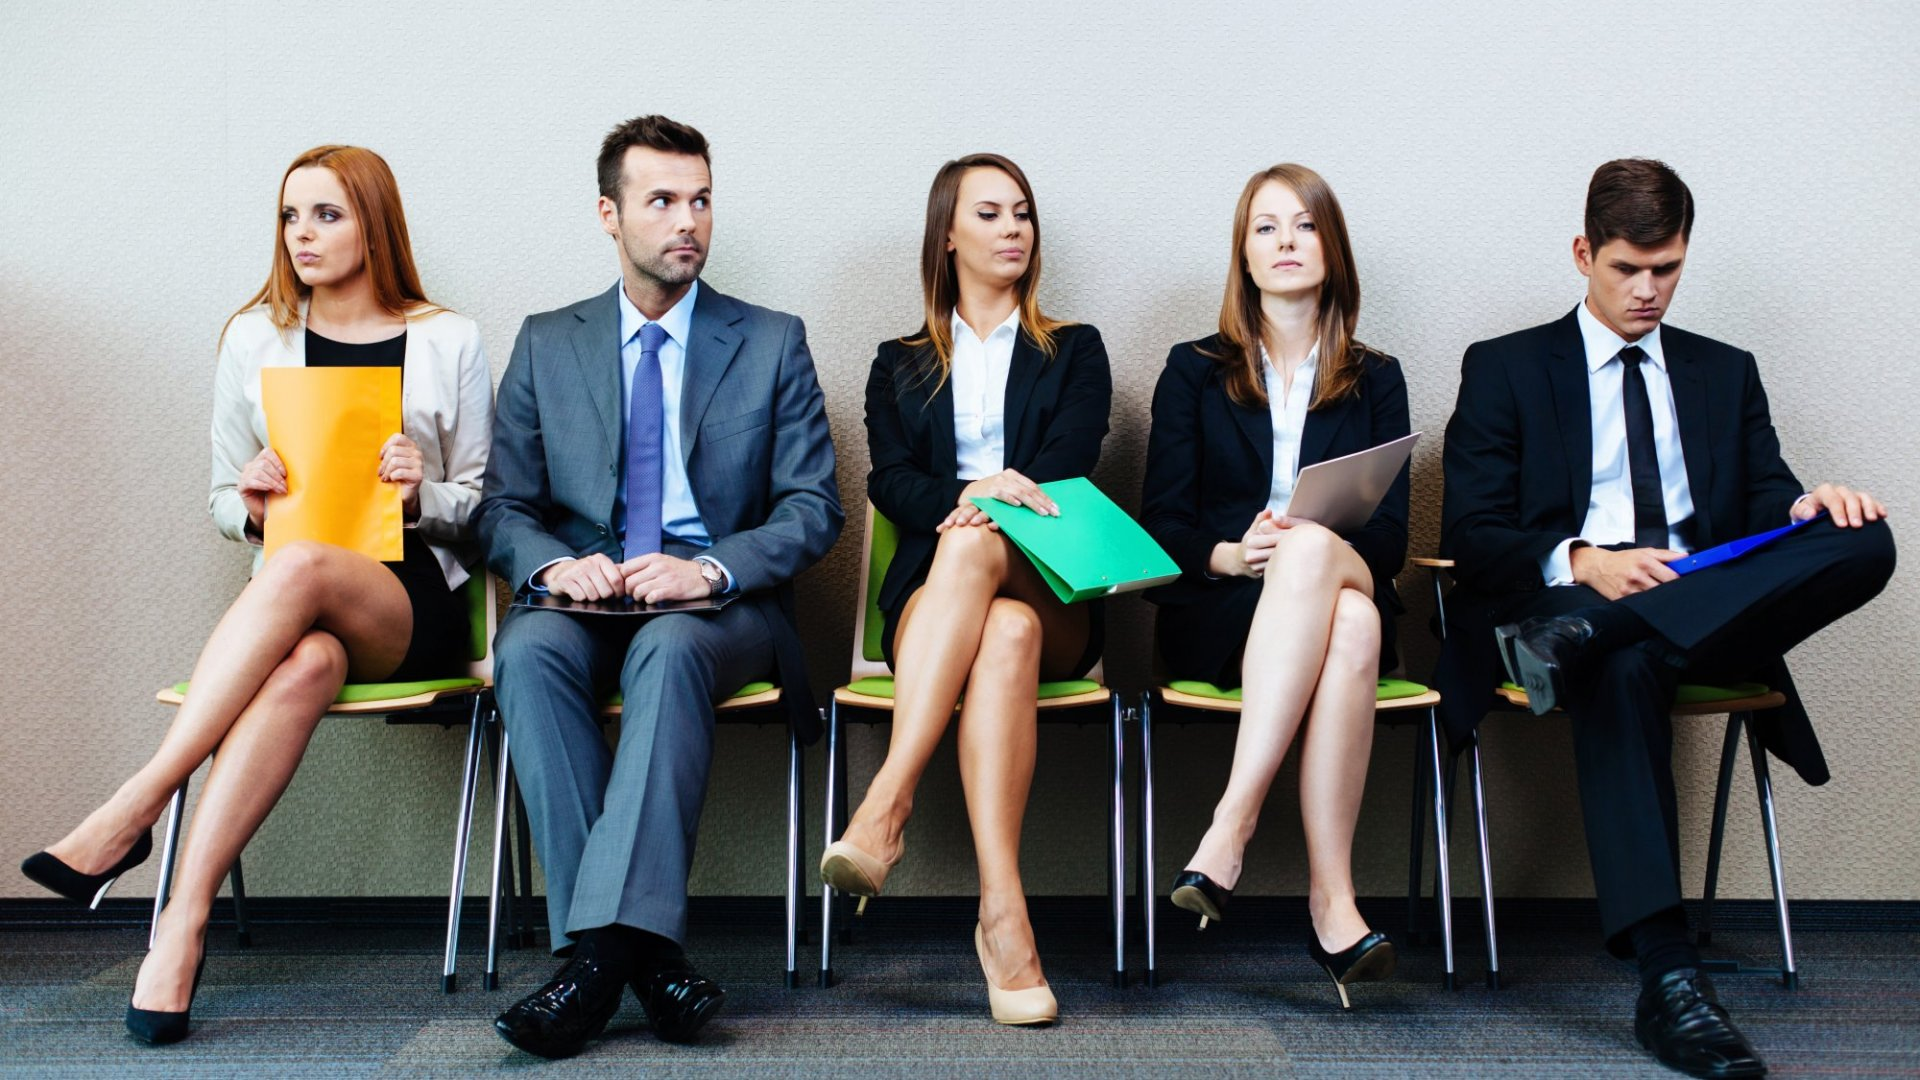 How to Attract and Hire Exceptionally Motivated Employees